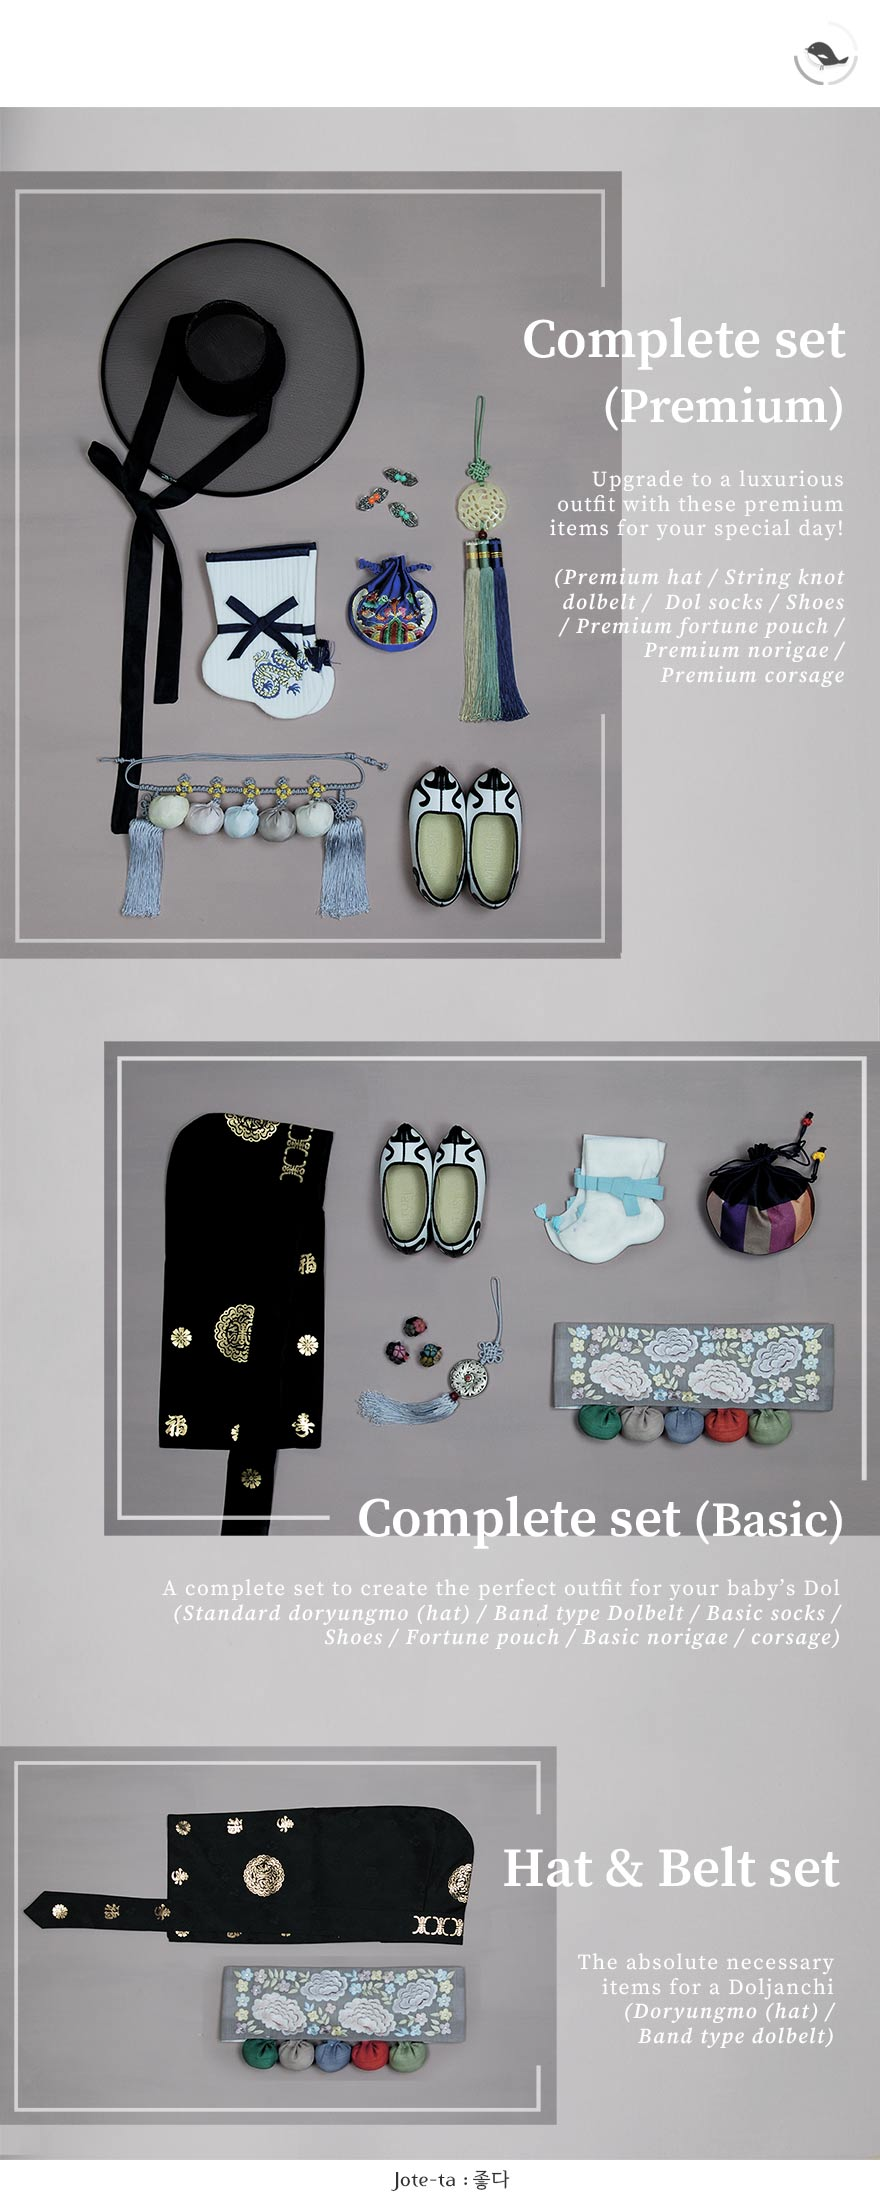 This is a thorough description of the complete sets included in our baby boy hanboks. For each boy hanbok, we provide a dol belt and hanbok hat option, basic complete option, and complete set option which comes with all the necessary baby boy hanbok accessories to enrich the look of a boy hanbok for doljanchi, doljabi, 100 days party, and Dol.